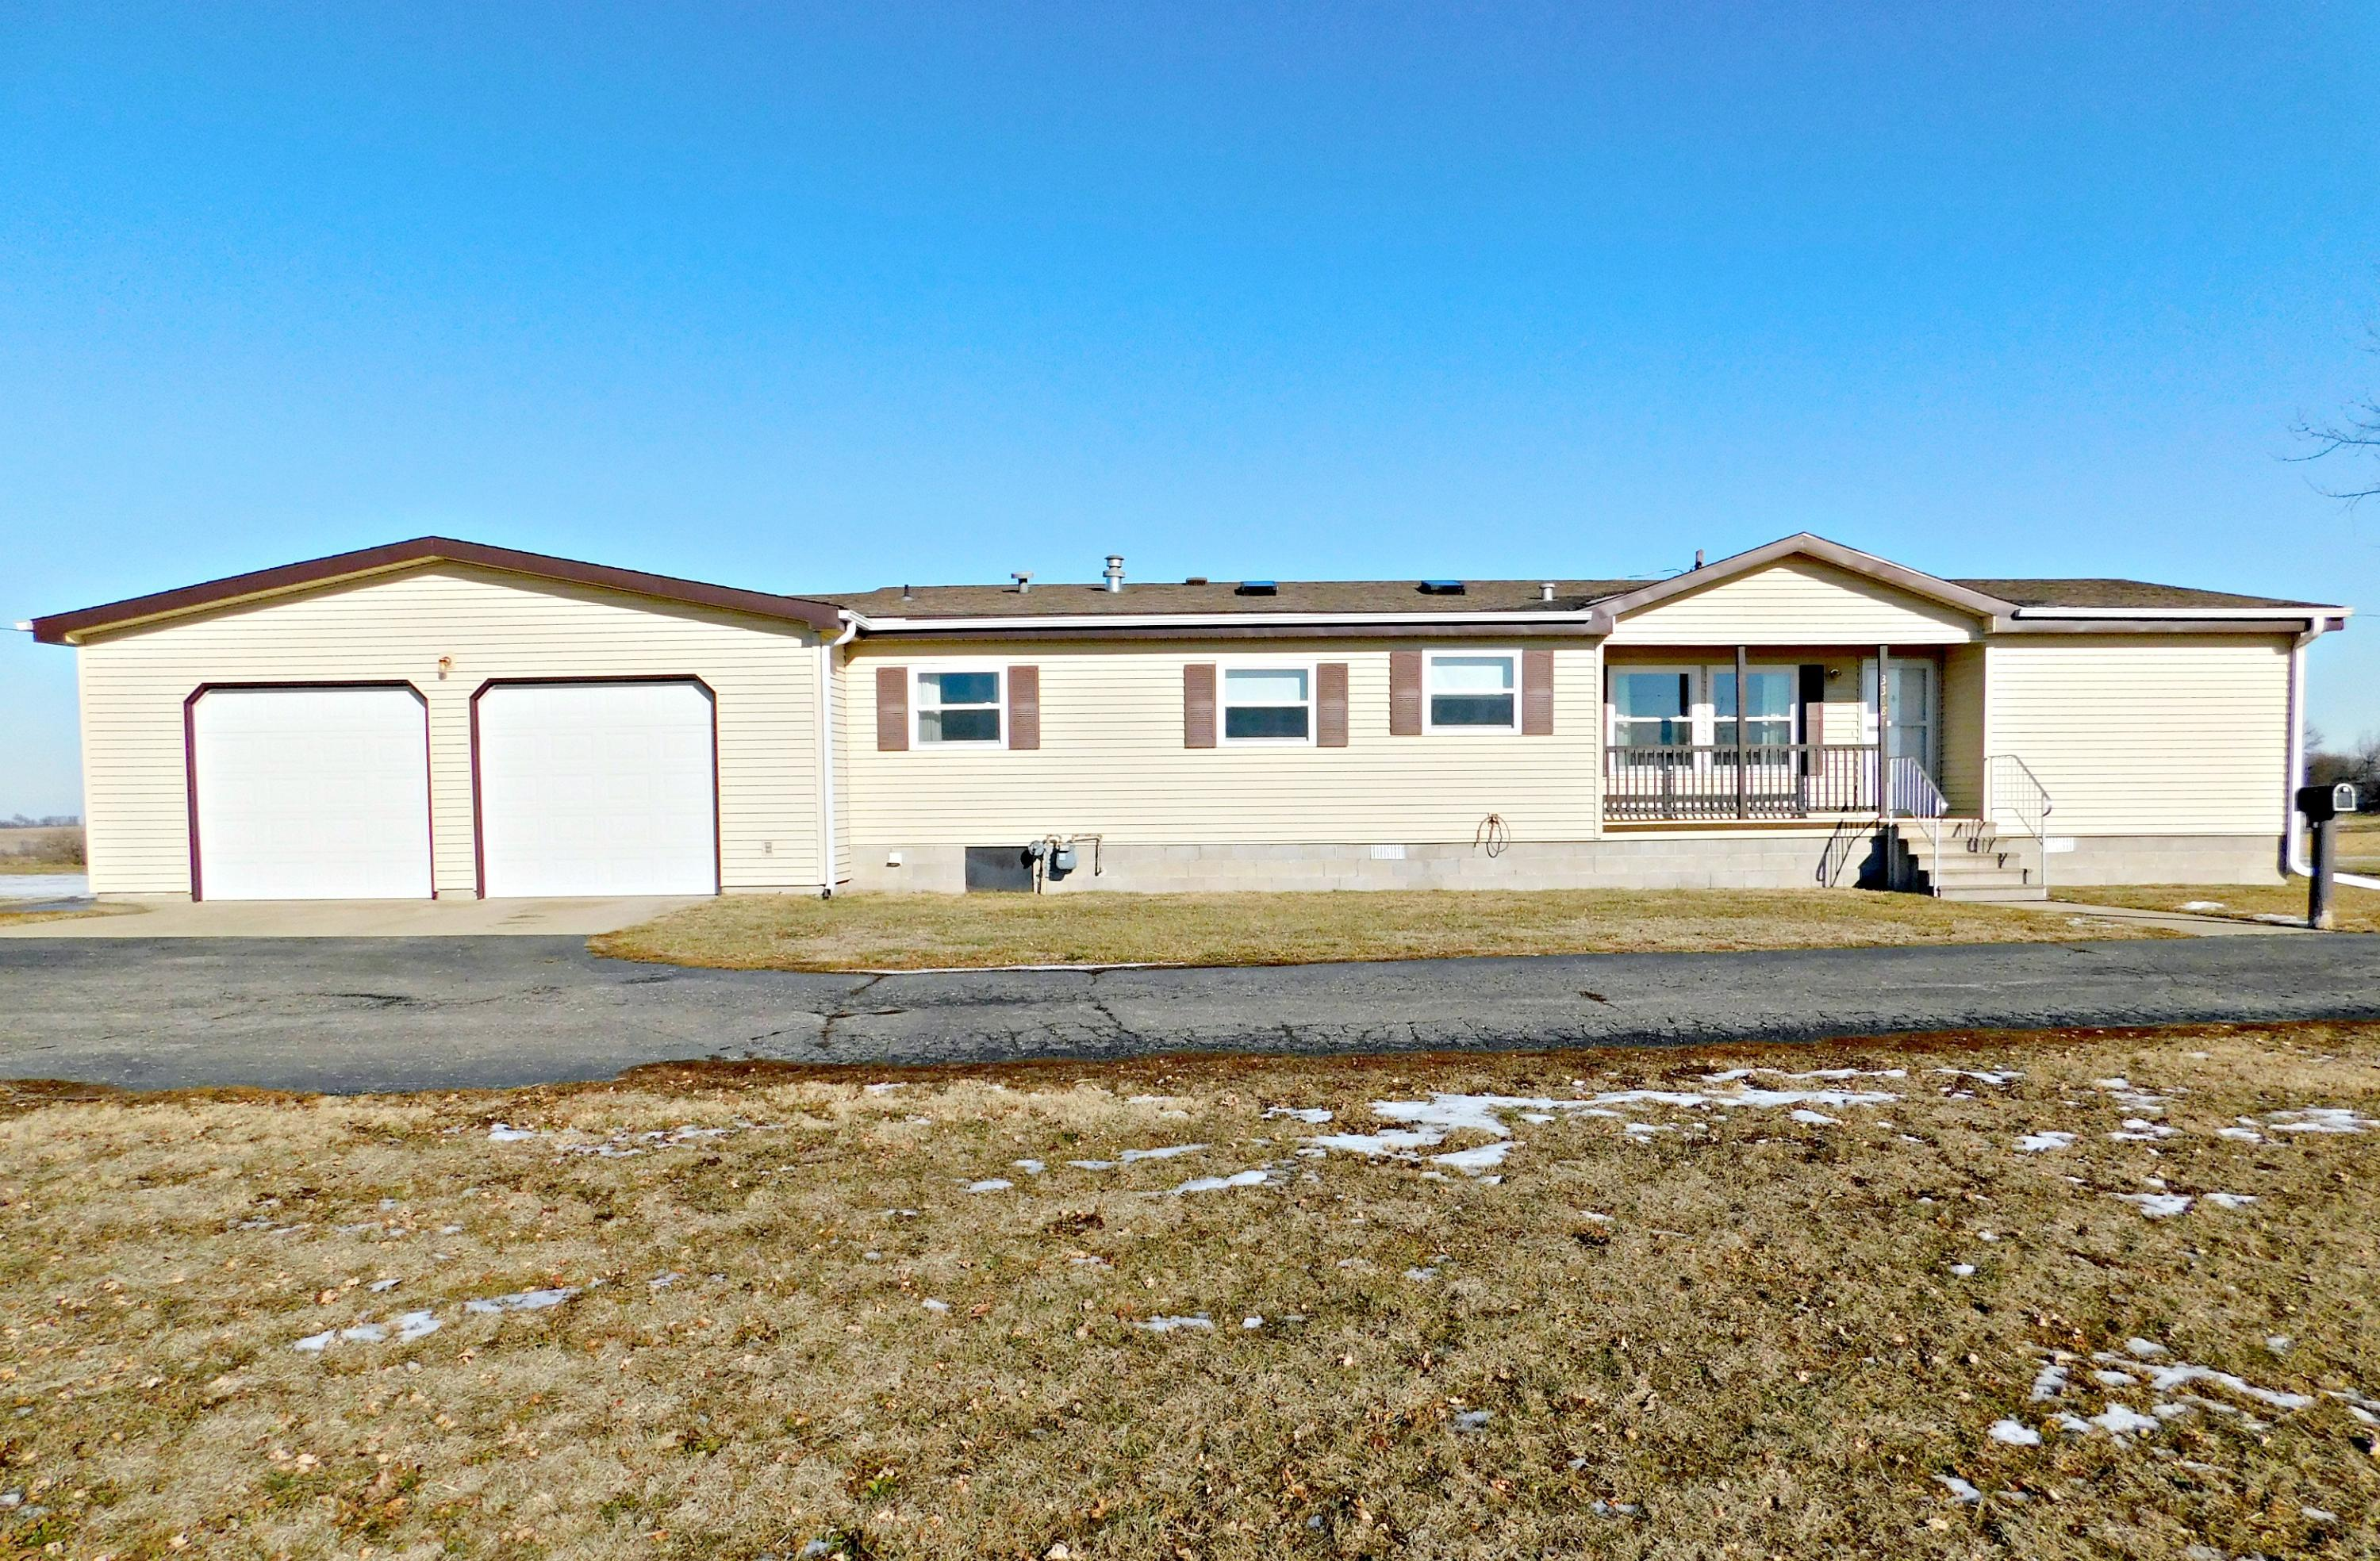 33087 STATE HWY A, Maitland, Missouri 64466, 3 Bedrooms Bedrooms, ,2 BathroomsBathrooms,Residential,STATE HWY A,4932